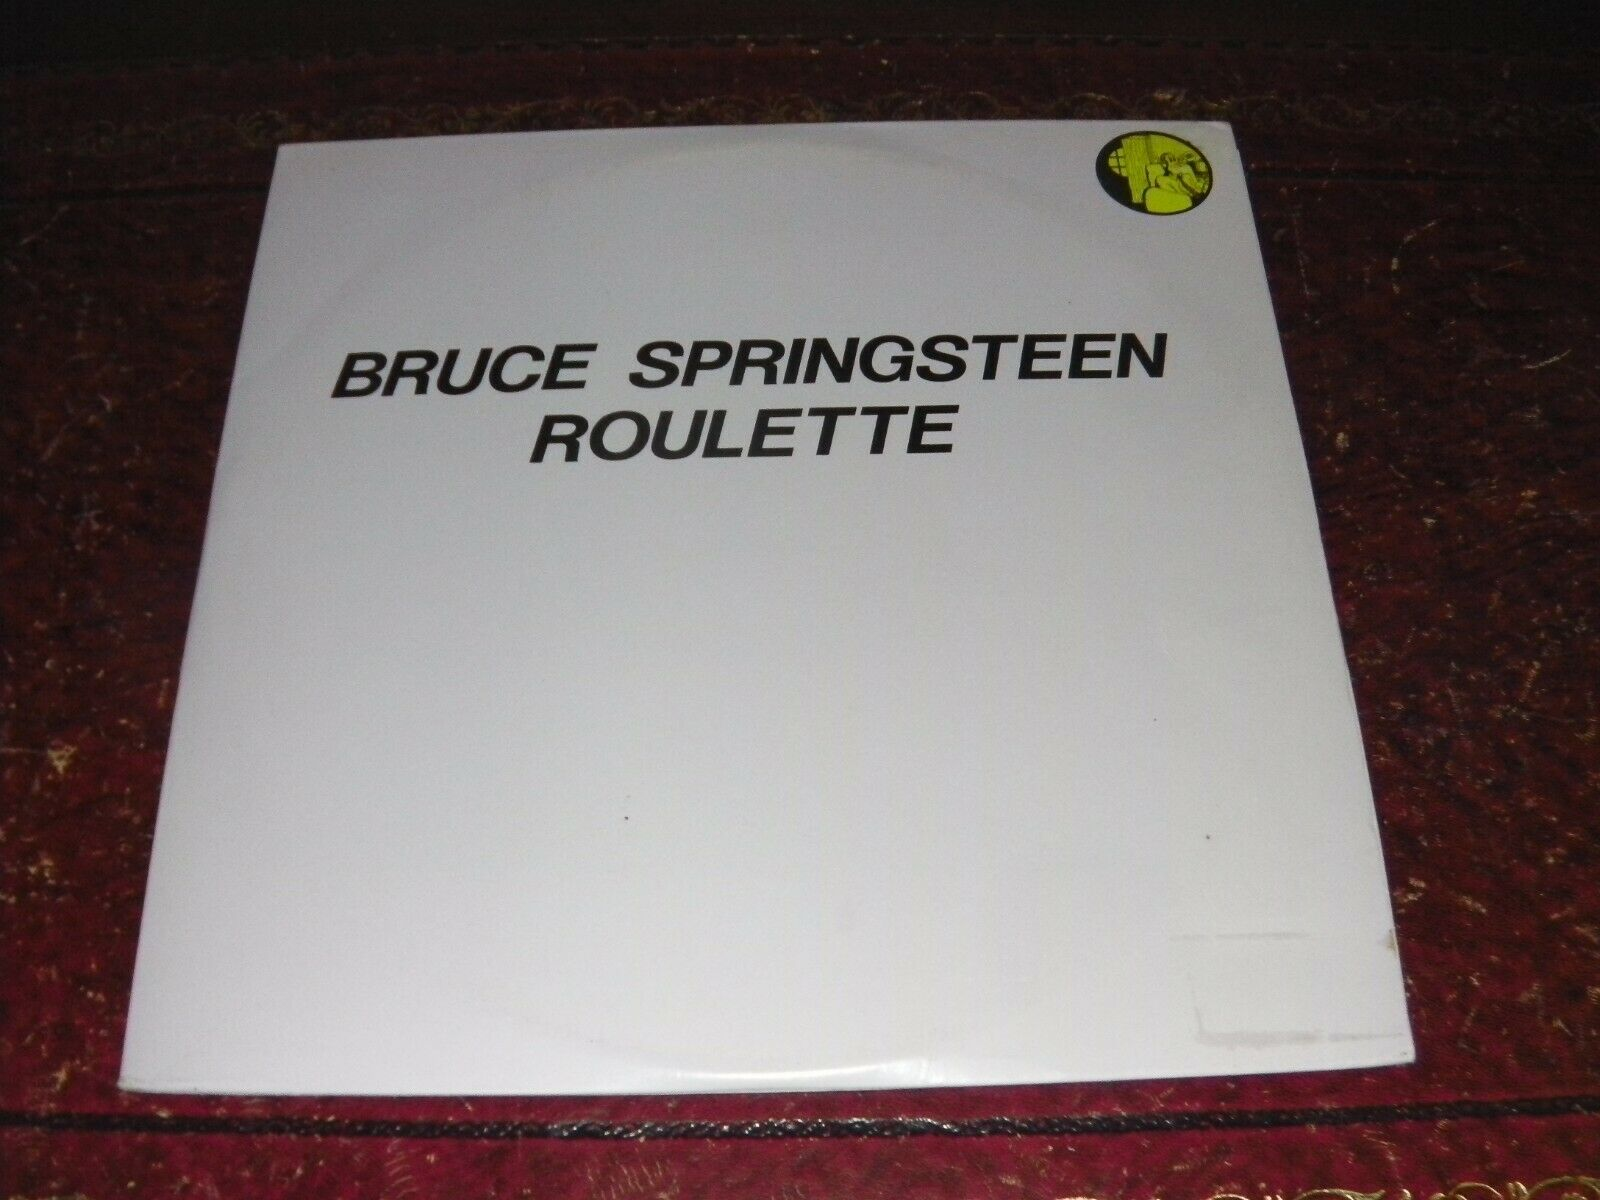 BRUCE SPRINGSTEEN - ROULETTE - ORIG TAKRL LIVE 2LP 1988 NO TMOQ TMQ